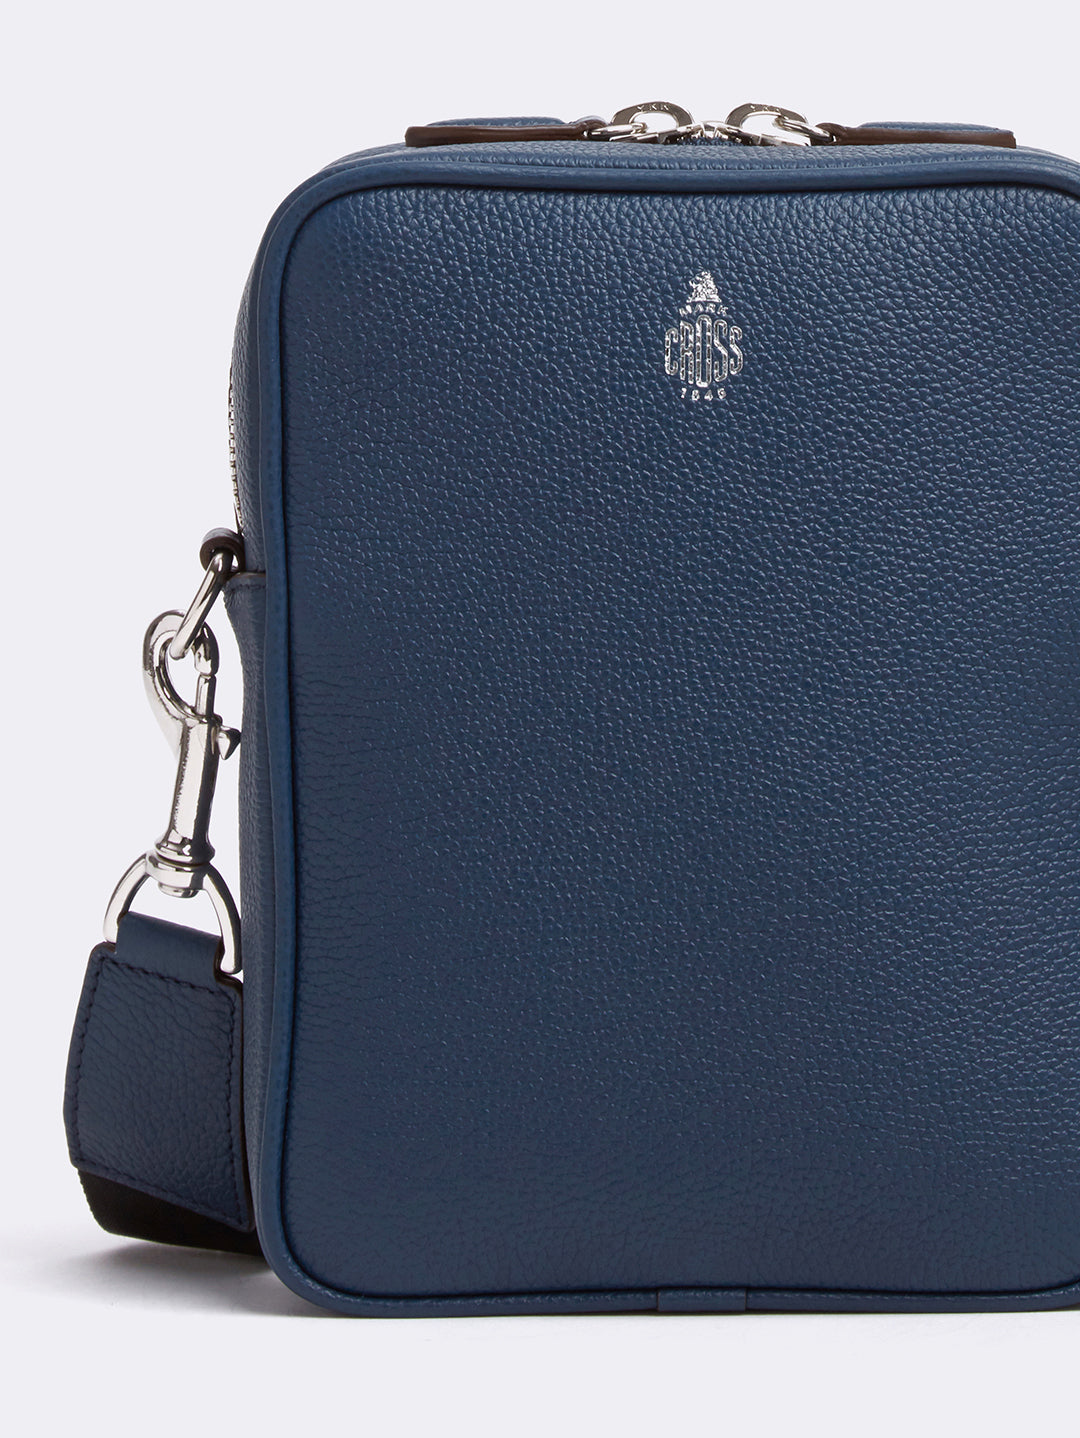 Mark Cross Scott Leather Crossbody Bag Tumbled Grain Navy Detail